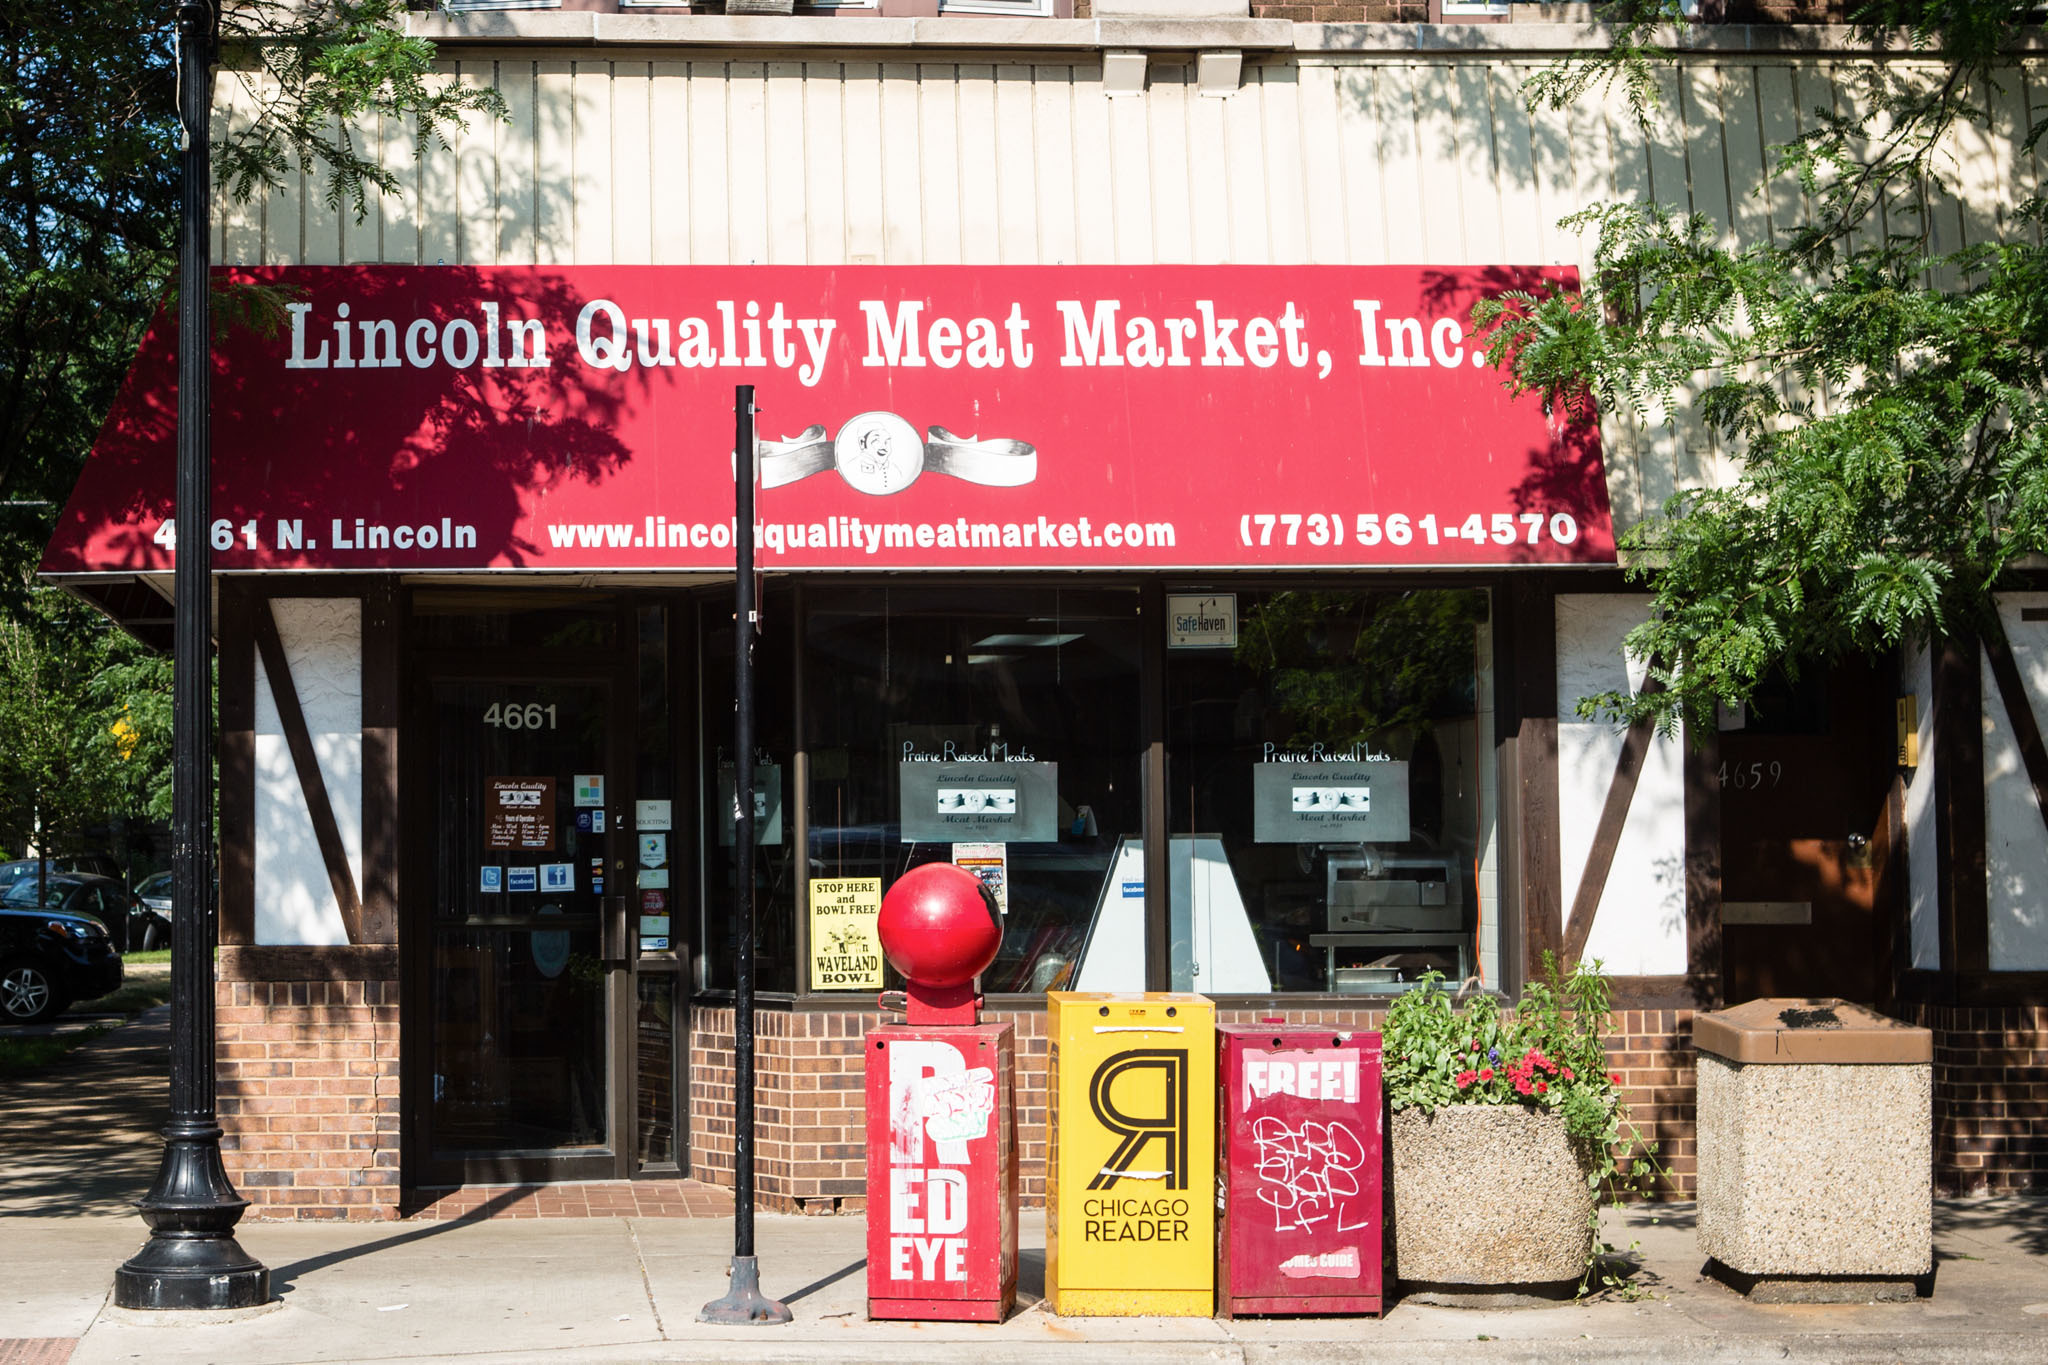 Lincoln Quality Meat Market